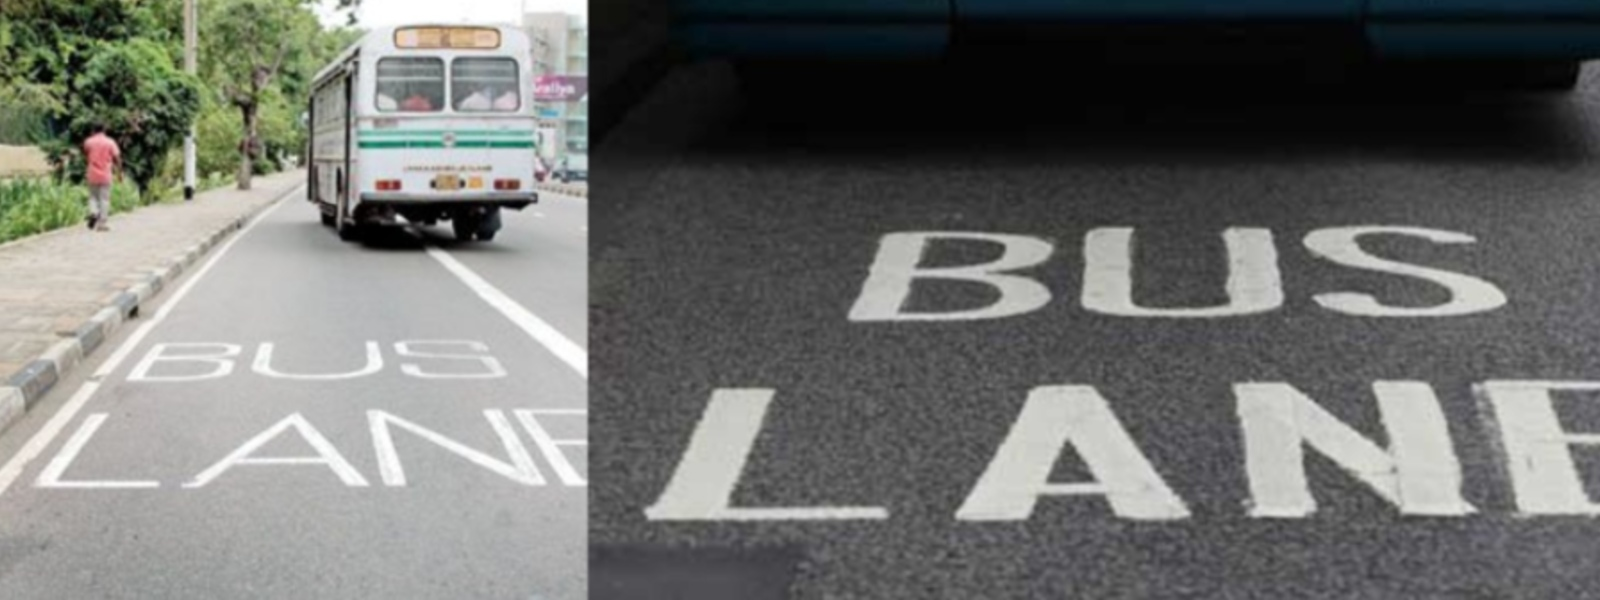 Bus Priority Lane rule in effect from tomorrow: SL Police